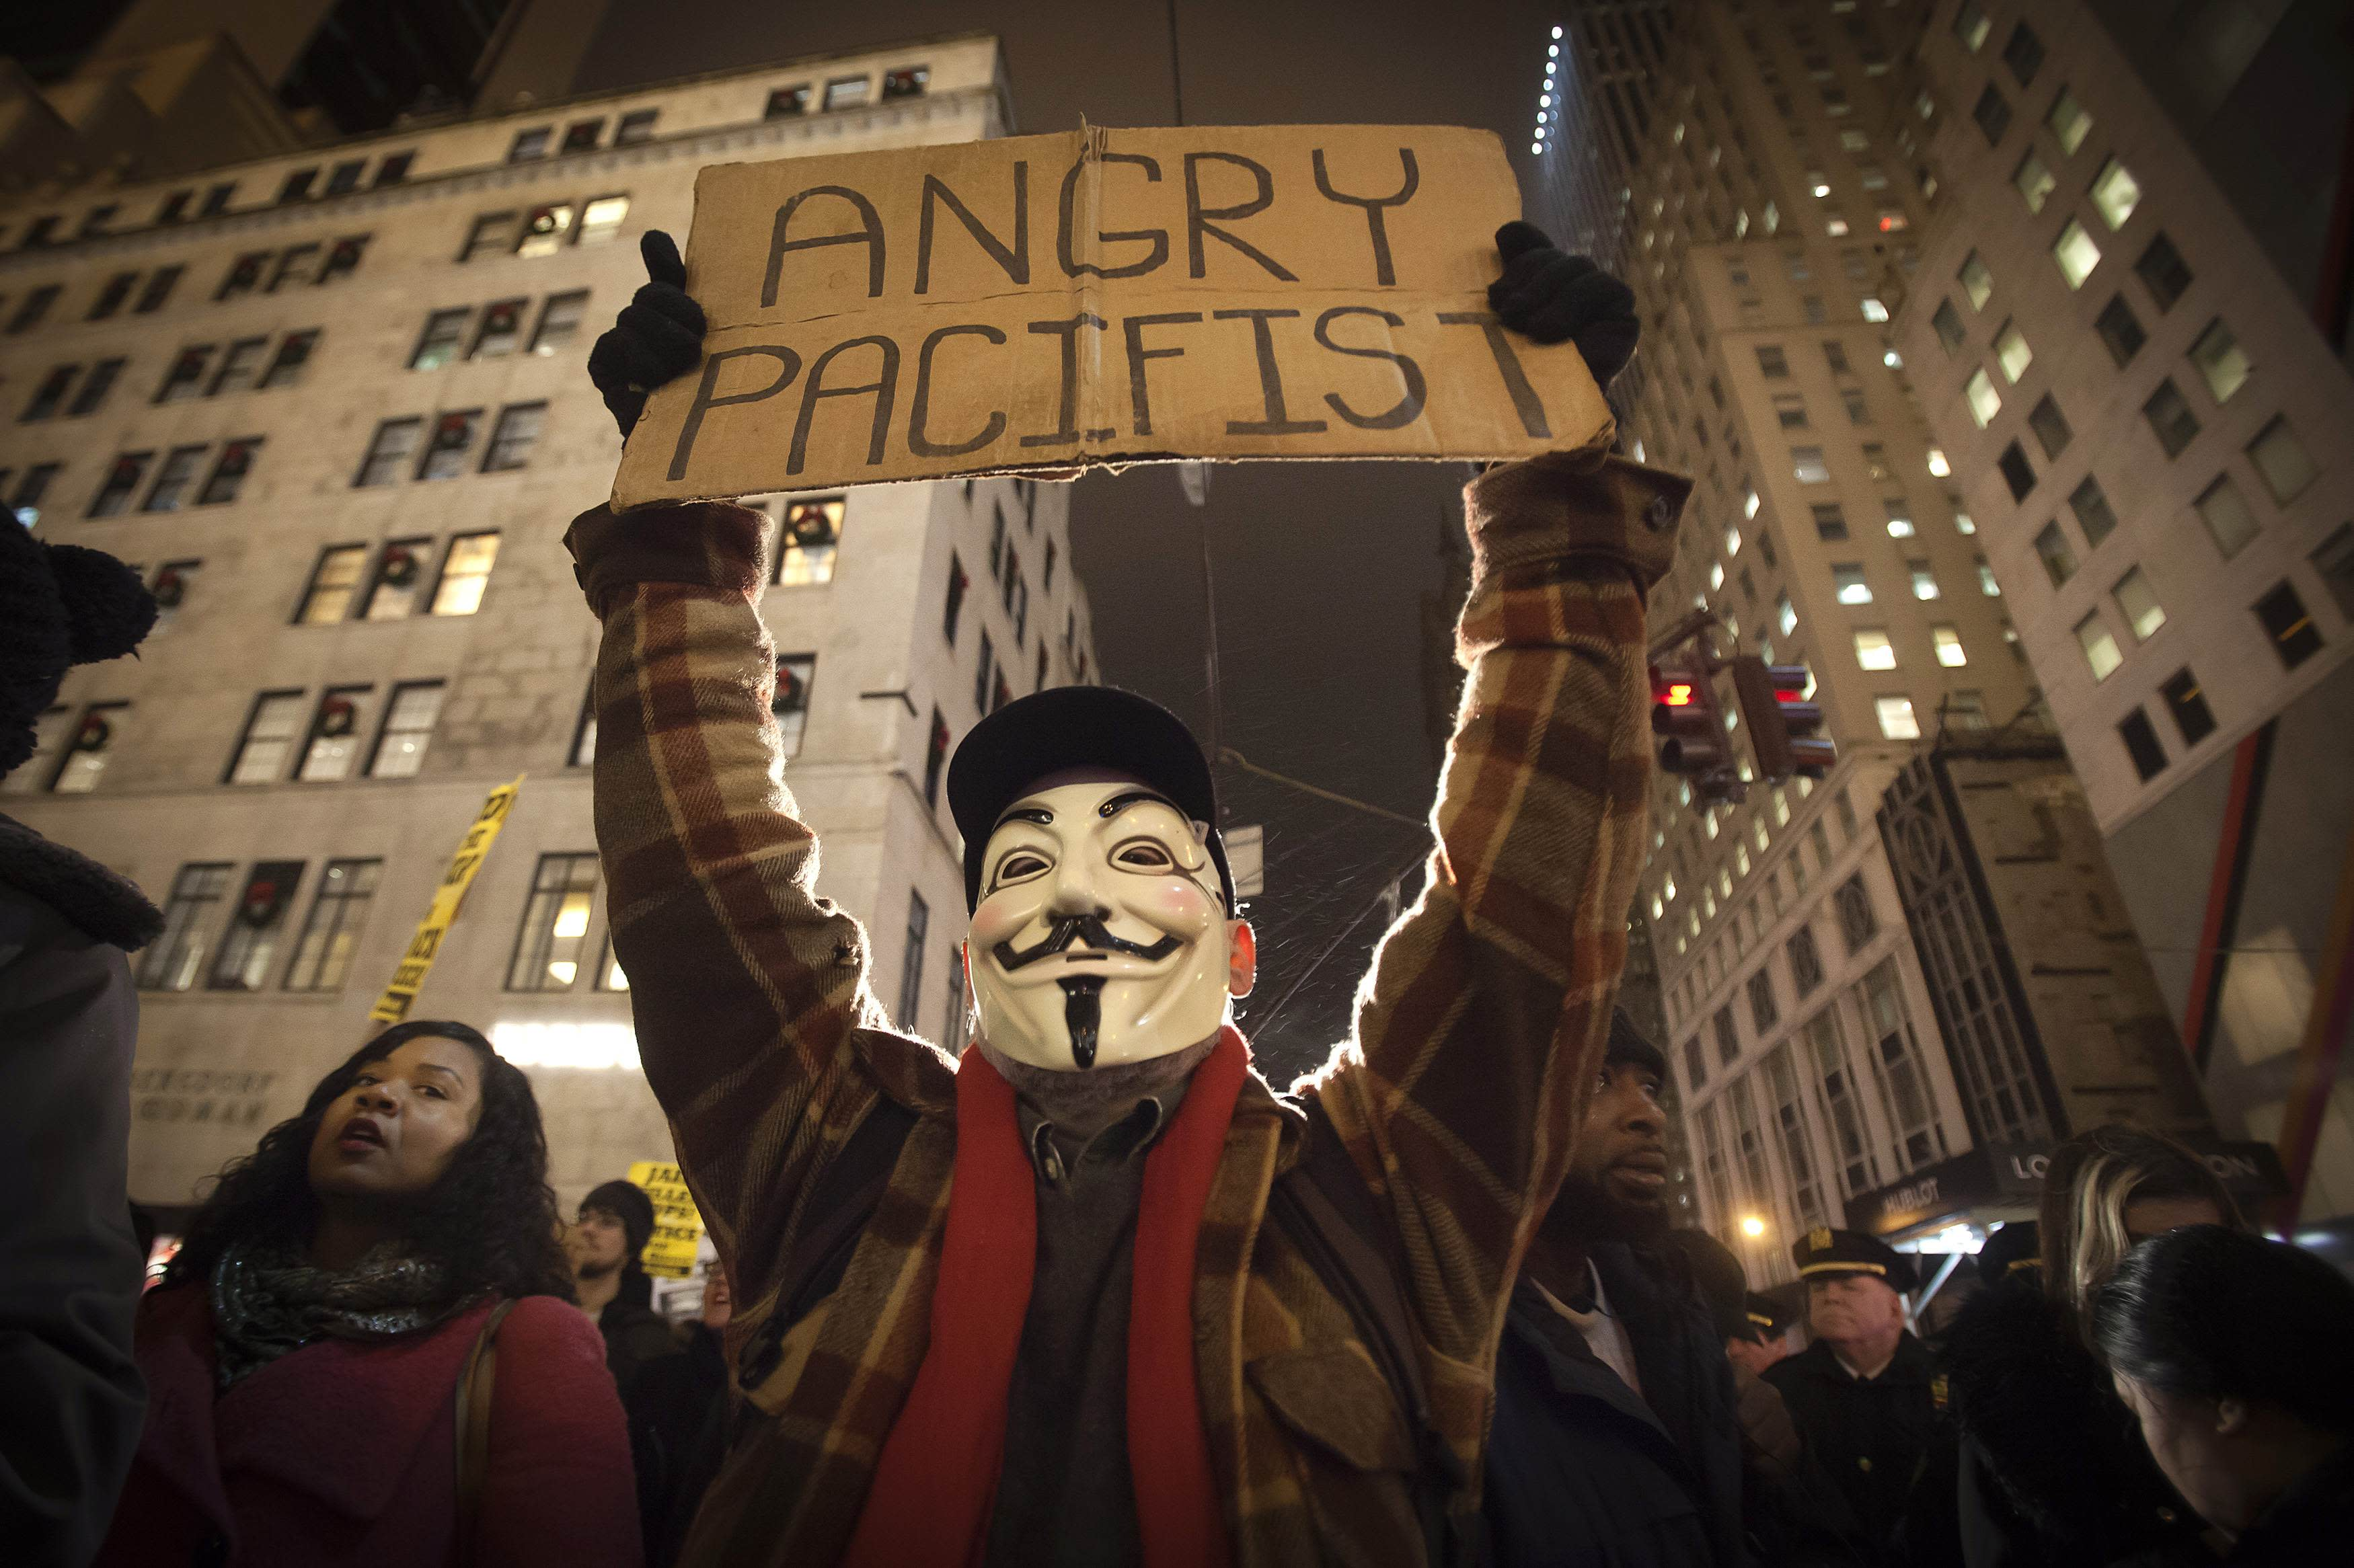 A demonstrator wearing a Guy Fawkes mask walks up 6th Ave as he protests against the police in the Manhattan borough of New York December 23, 2014. Mayor Bill de Blasio's attempts to soothe a city dismayed by the slaying of two officers were further rebuffed on Tuesday as protesters defied his call to suspend what have become regular demonstrations over excessive police force. REUTERS/Carlo Allegri (UNITED STATES - Tags: CIVIL UNREST CRIME LAW TPX IMAGES OF THE DAY)